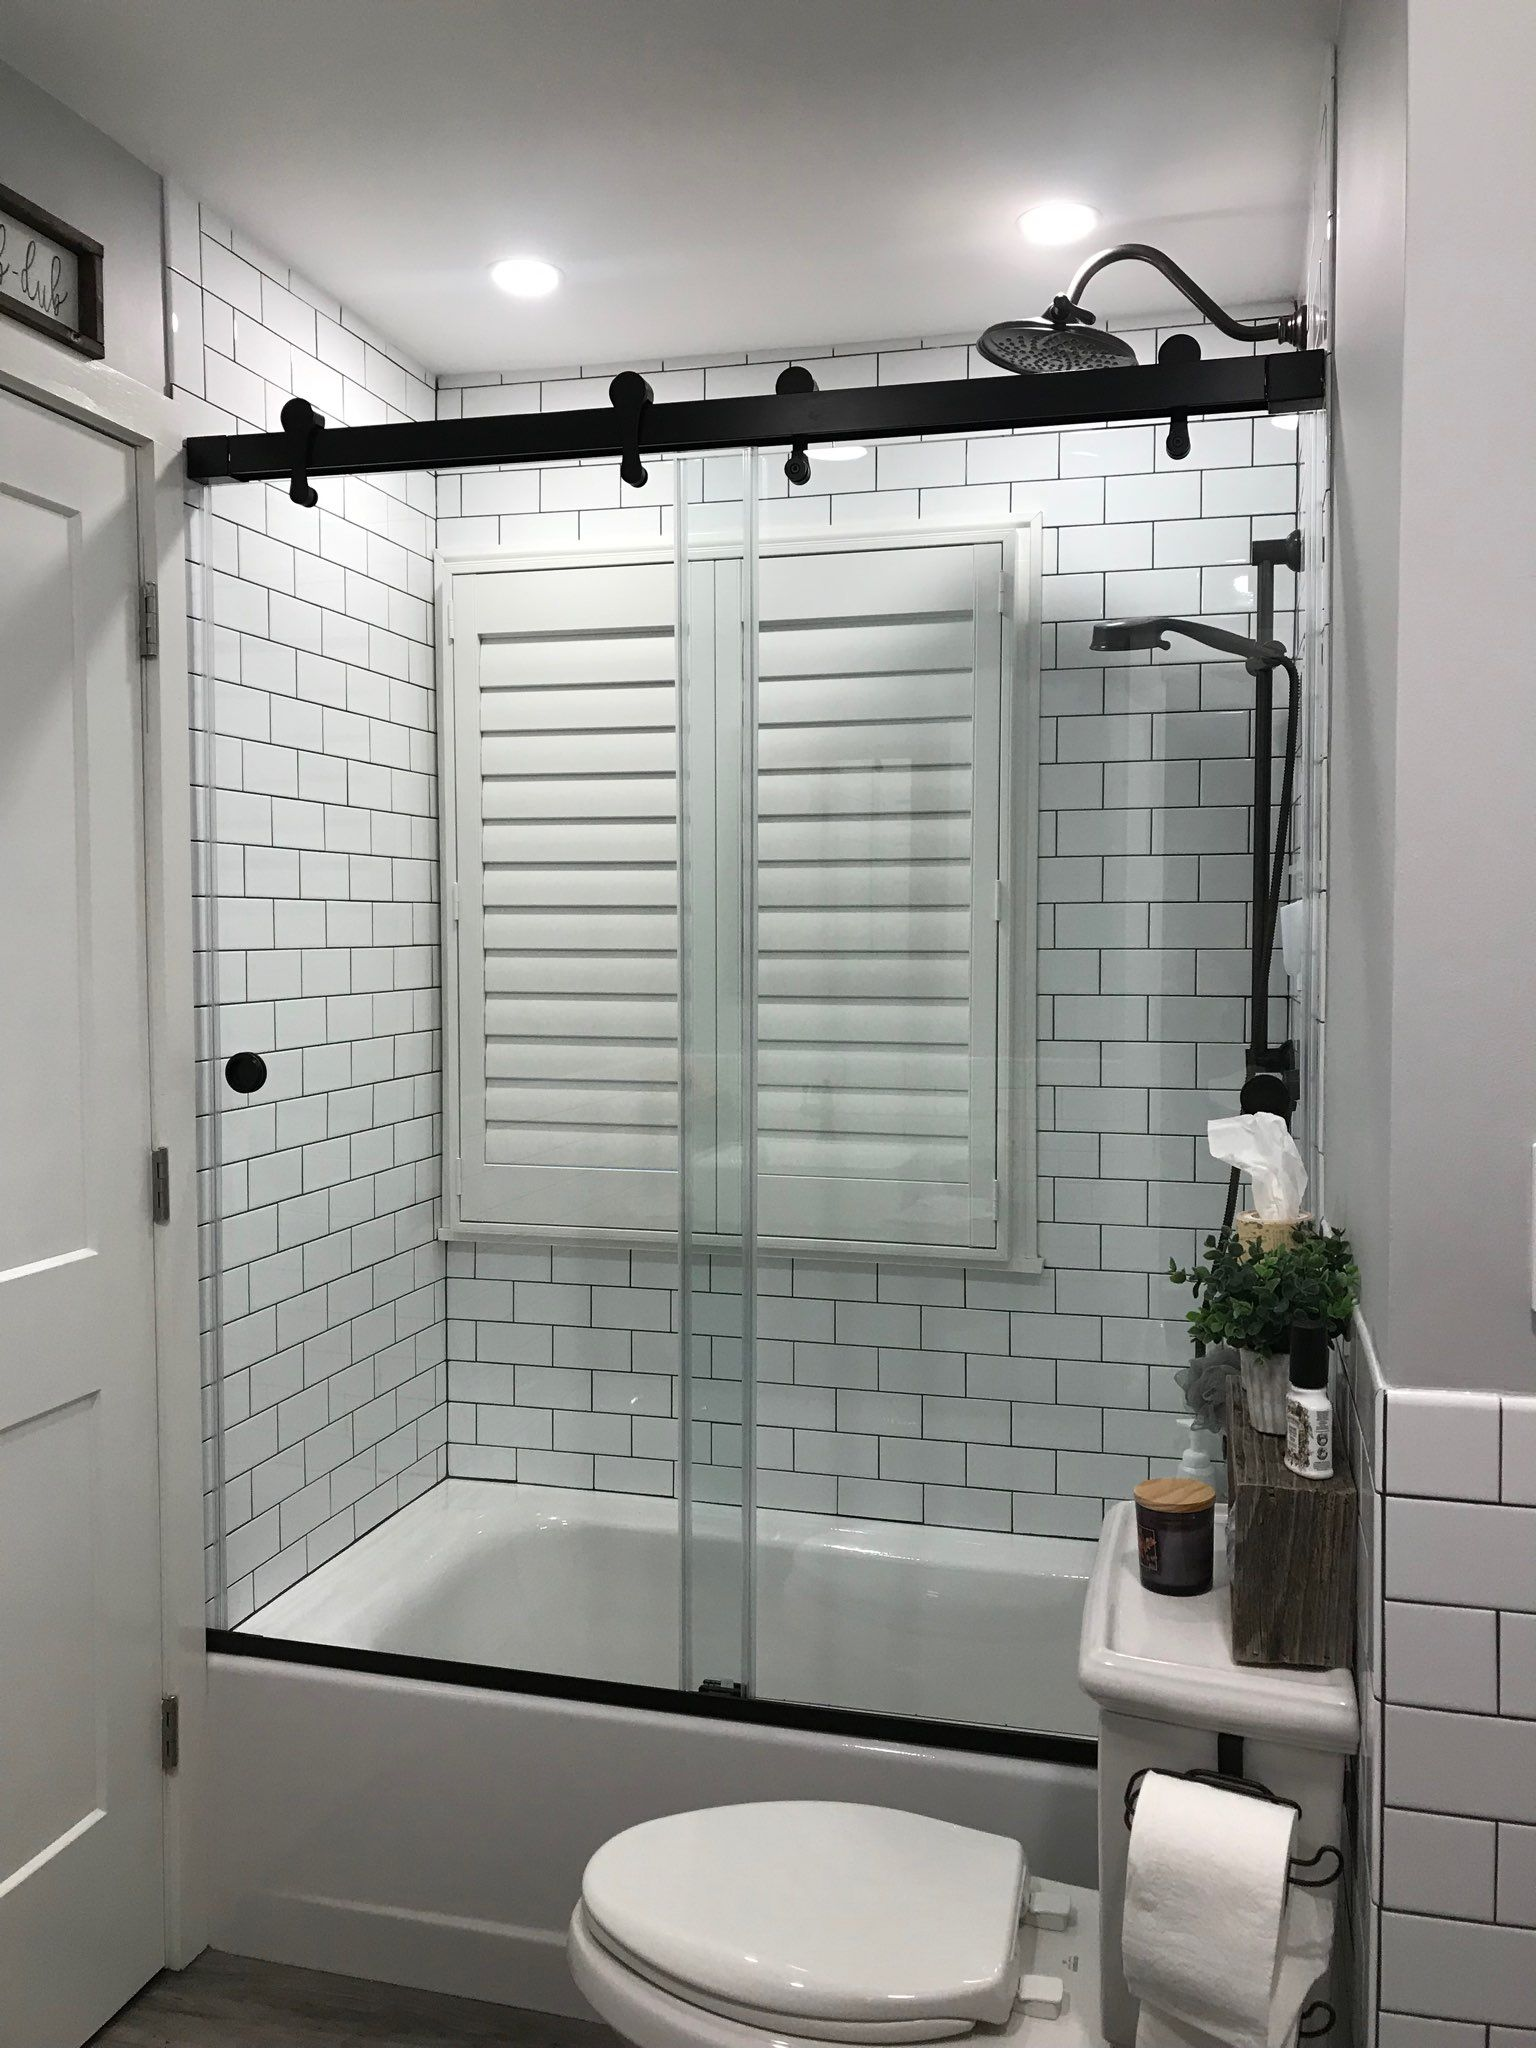 Centec Premier Barndoor Style Bypass Door In Oil Rubbed Bronze Finish Bath Shower Doors Tub Shower Doors Shower Doors